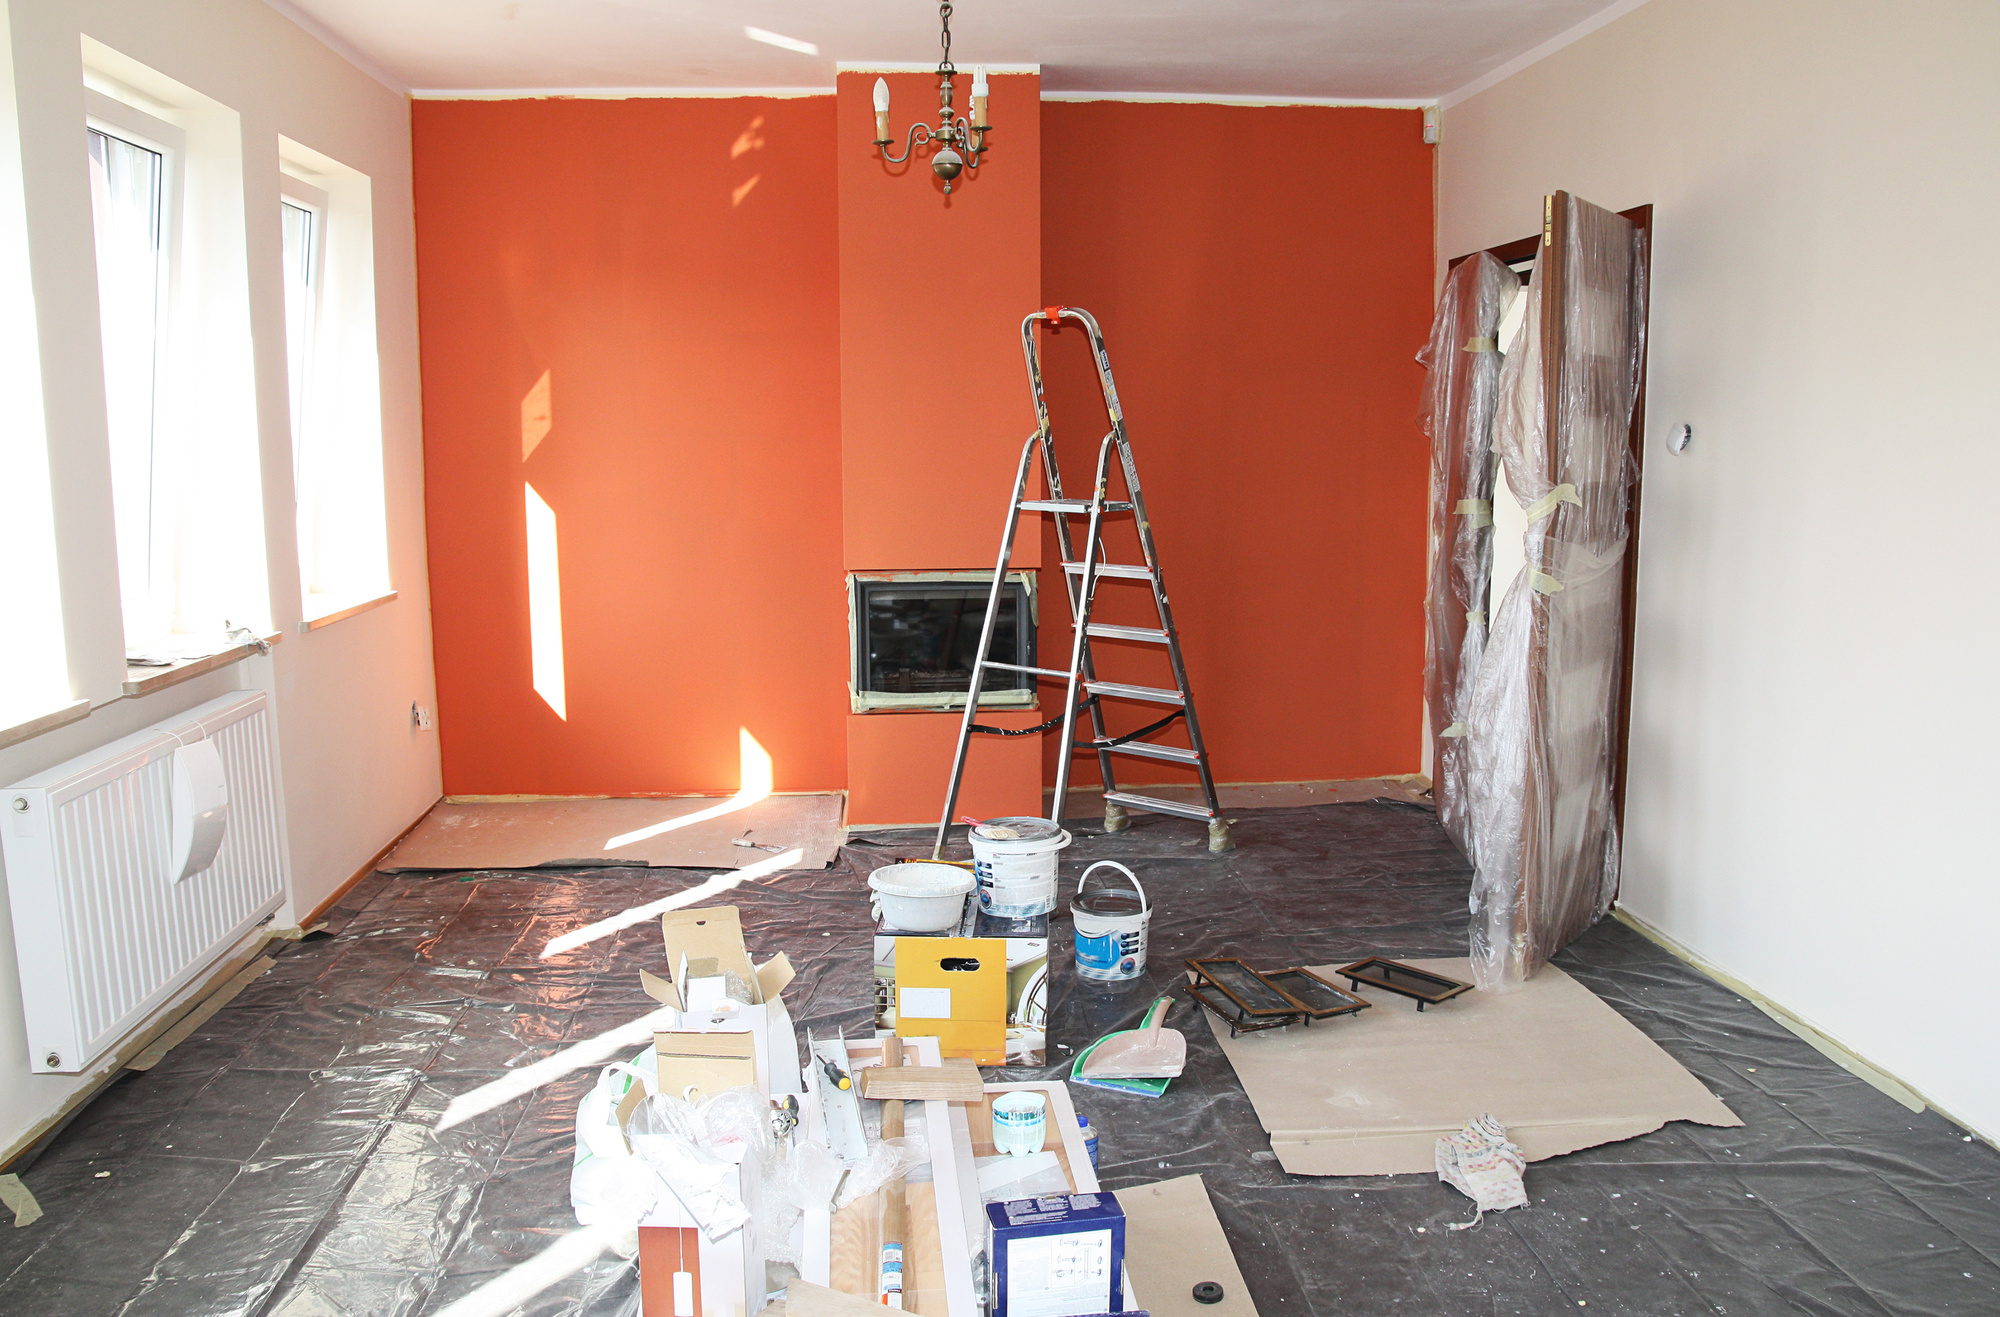 Interior of House Being Repainted